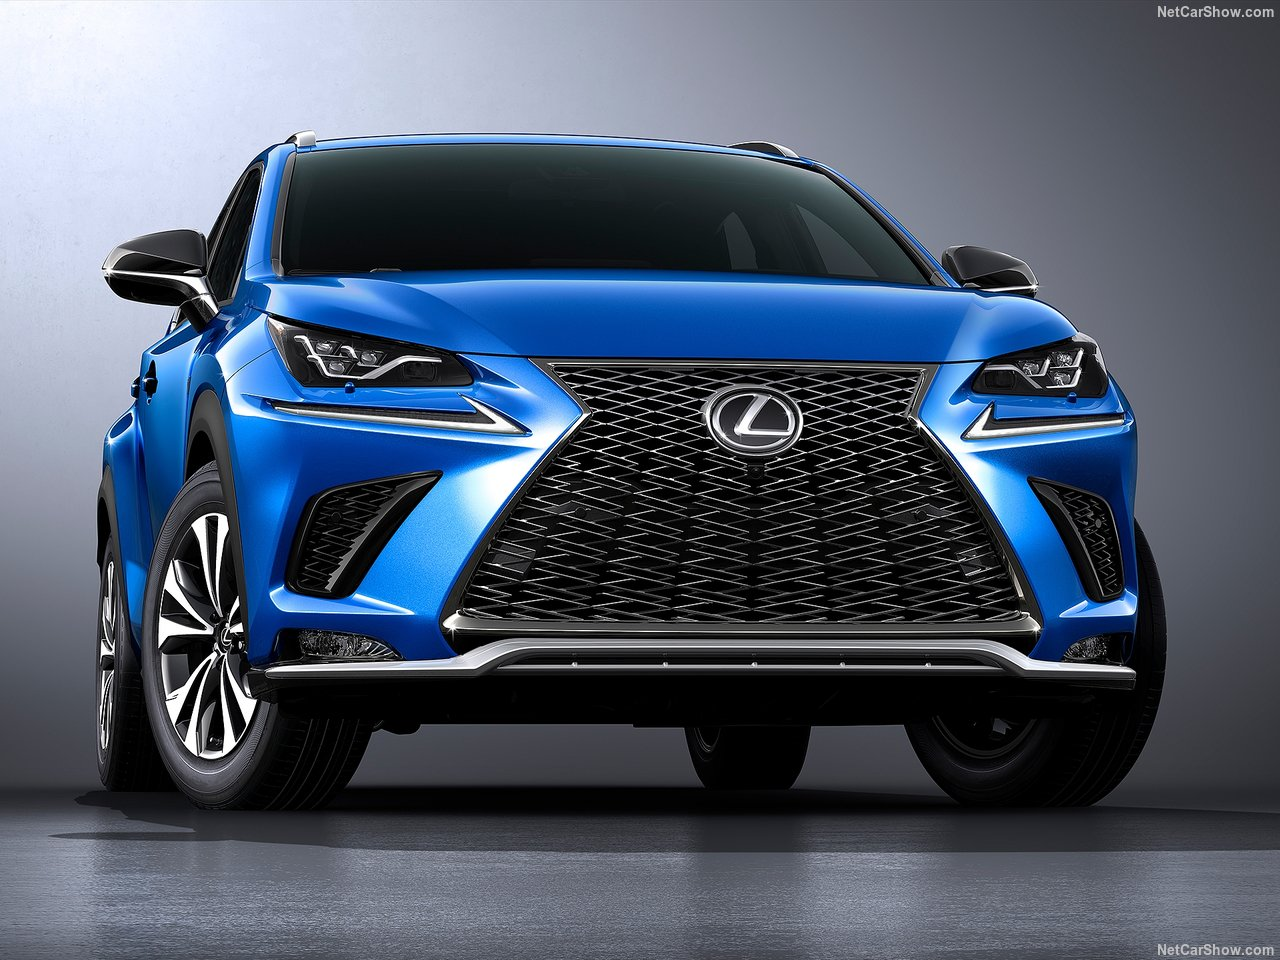 New Specs Revealed For The Lexus NX Car Tipster - Net car show